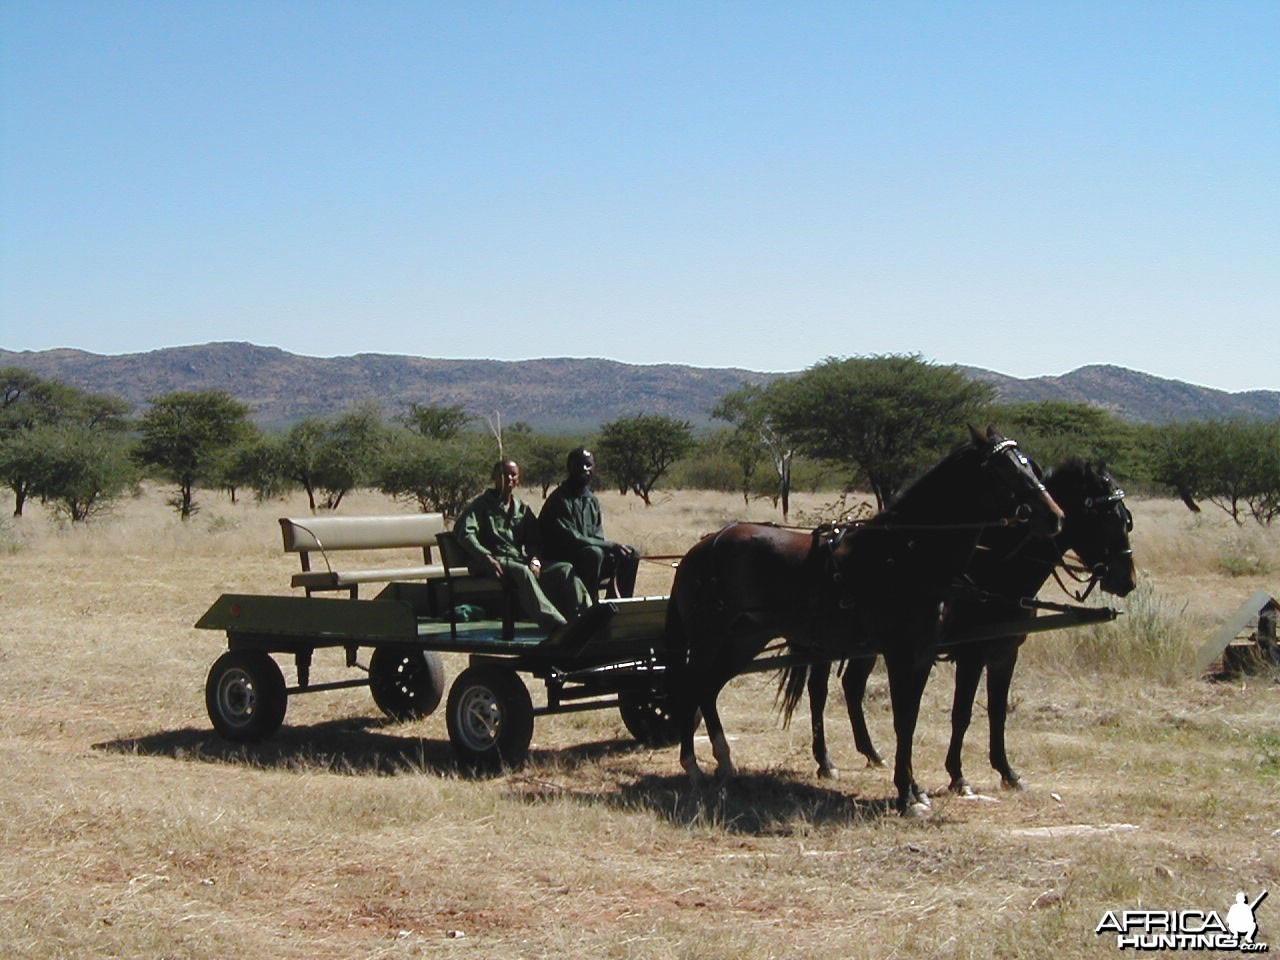 Horse-Drawn Carriage for Game Viewing